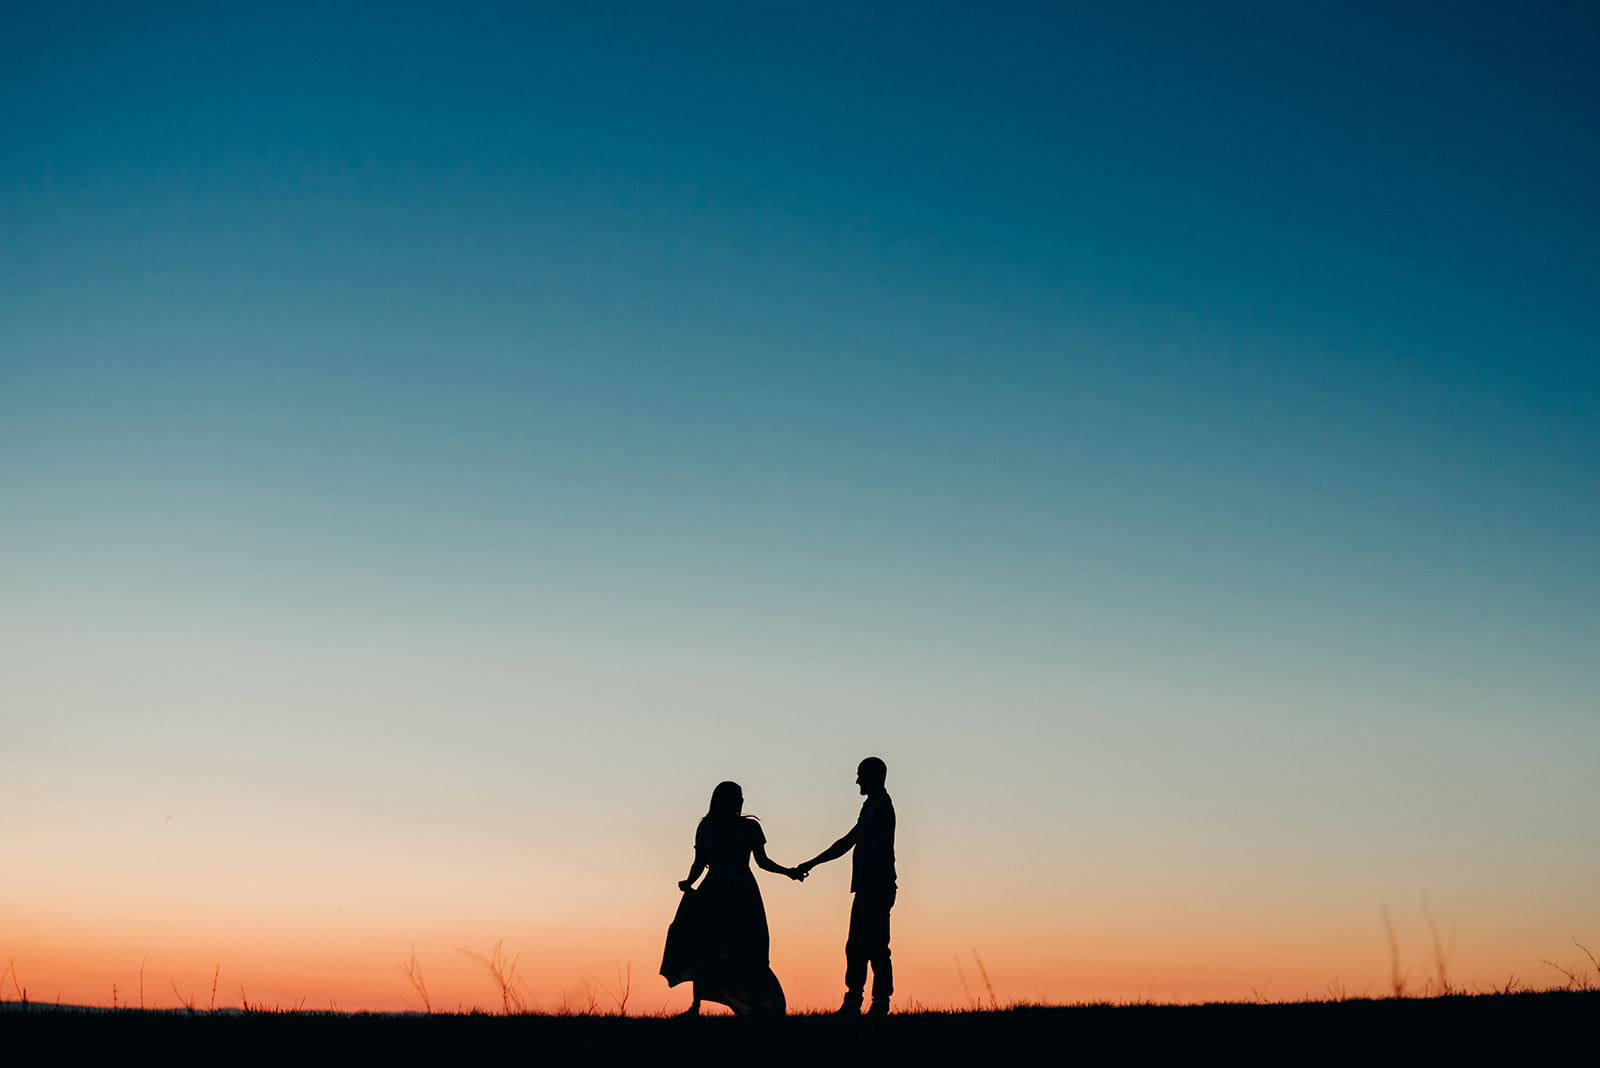 Virginia mountain engagement session Shenandoah valley at sunset silhouette dance